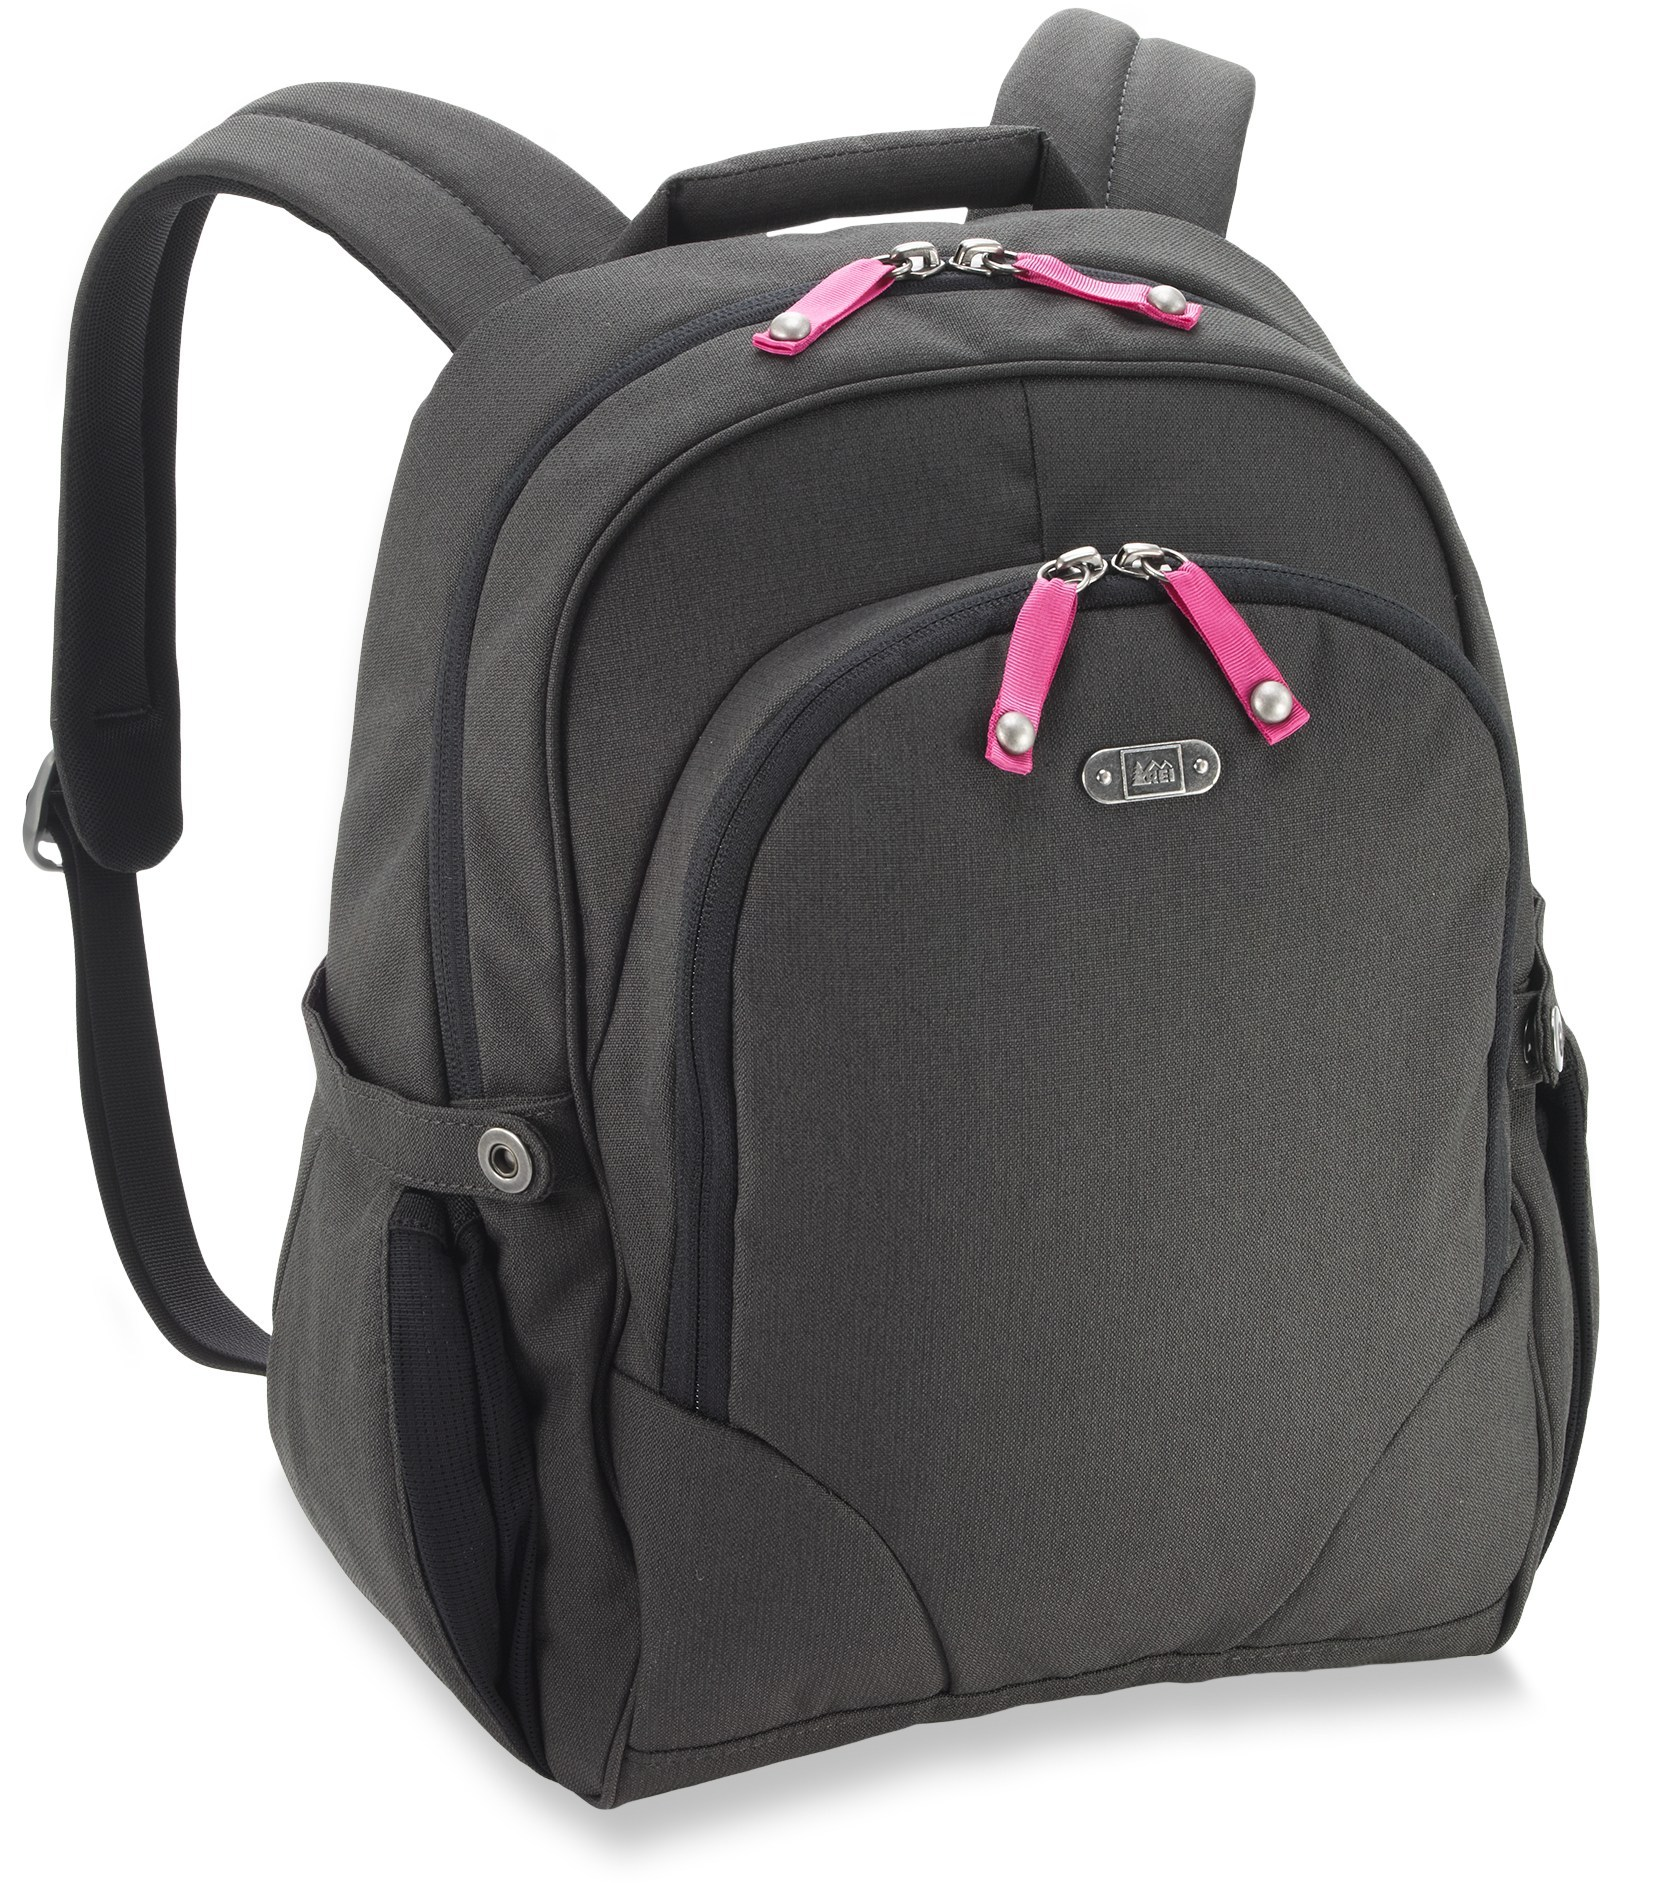 6a827f201a2 REI Women s Ashbury Pack -  47.73 - Thrill On